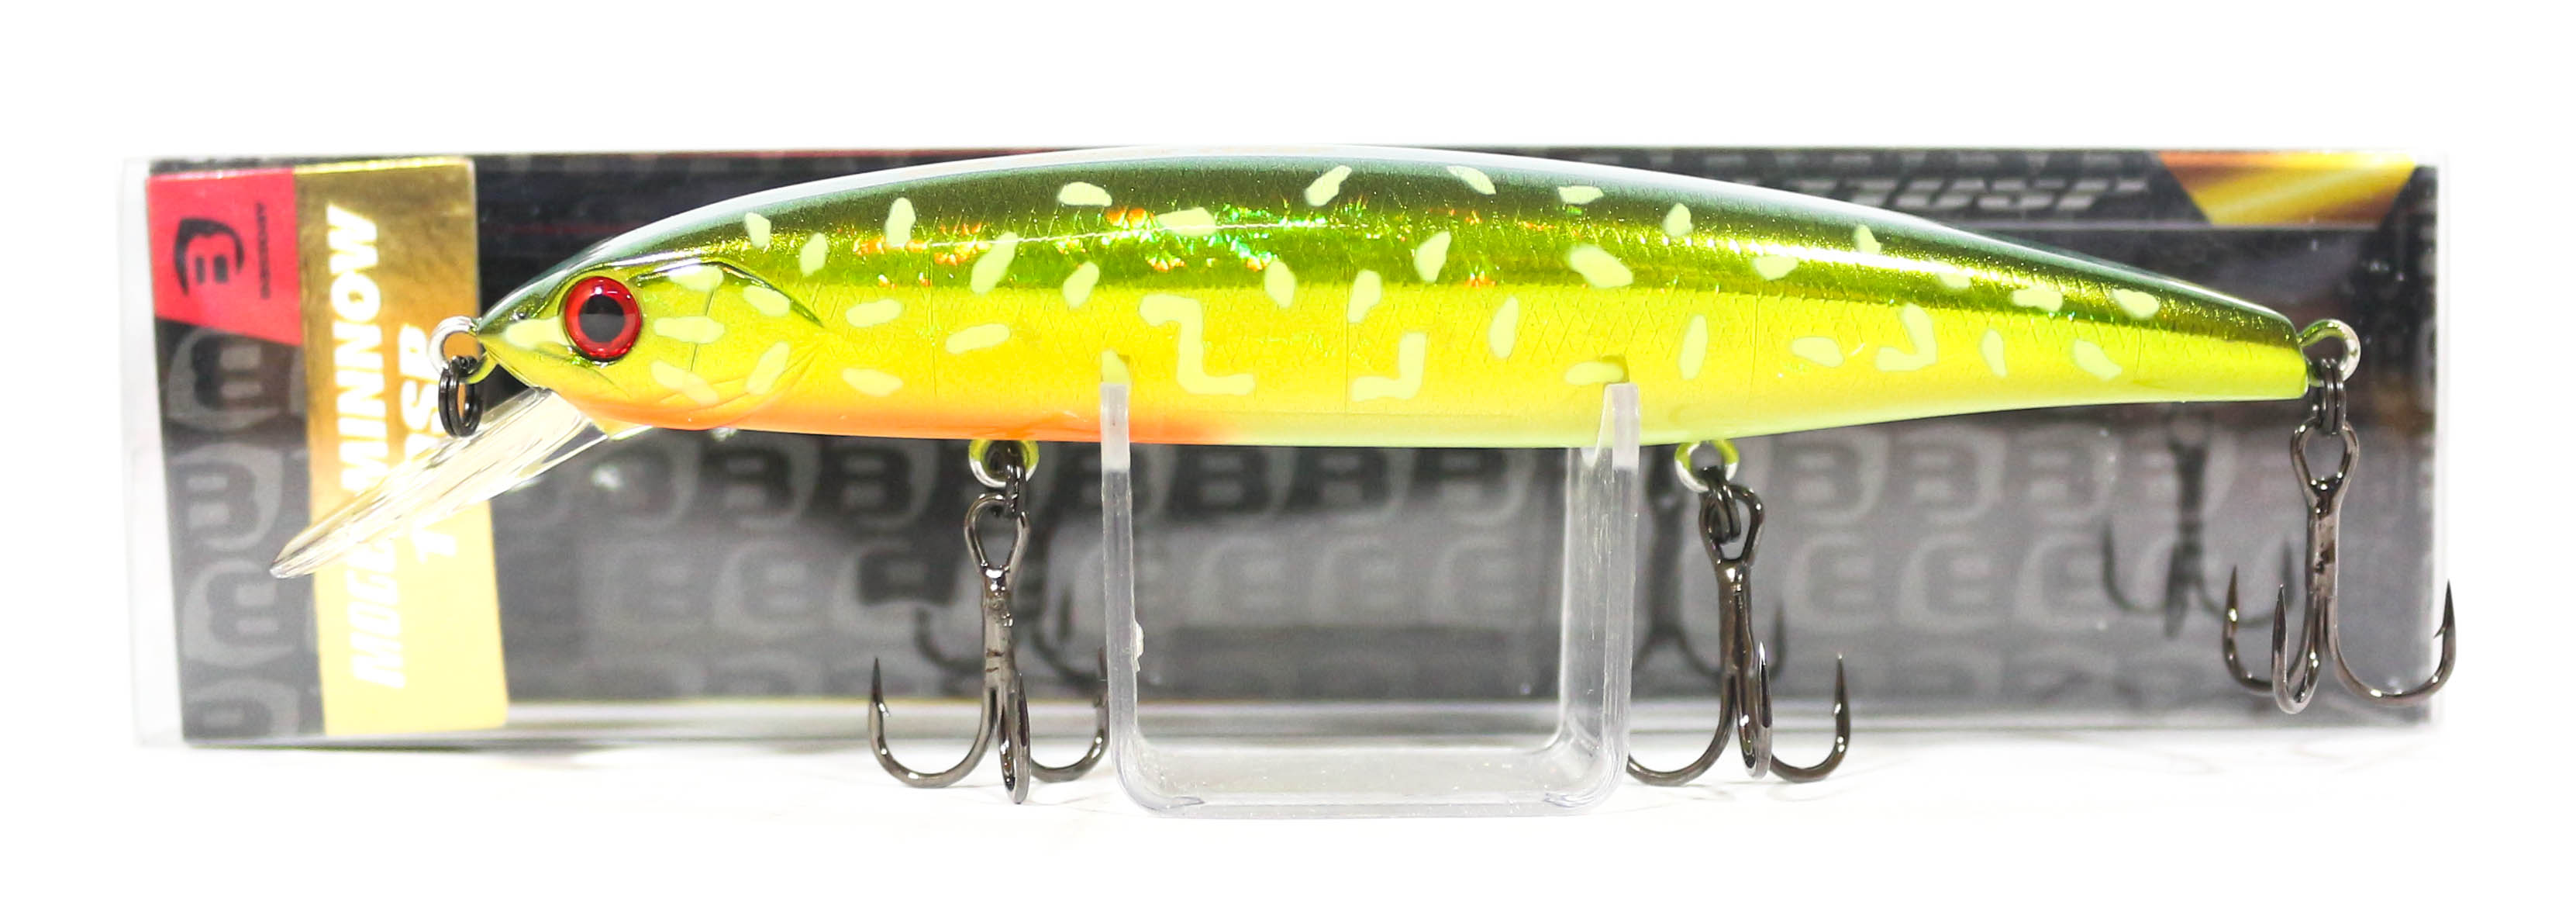 Bassday Mogul Minnow 110SP Suspend Lure 17 grams FL-901 (3130)